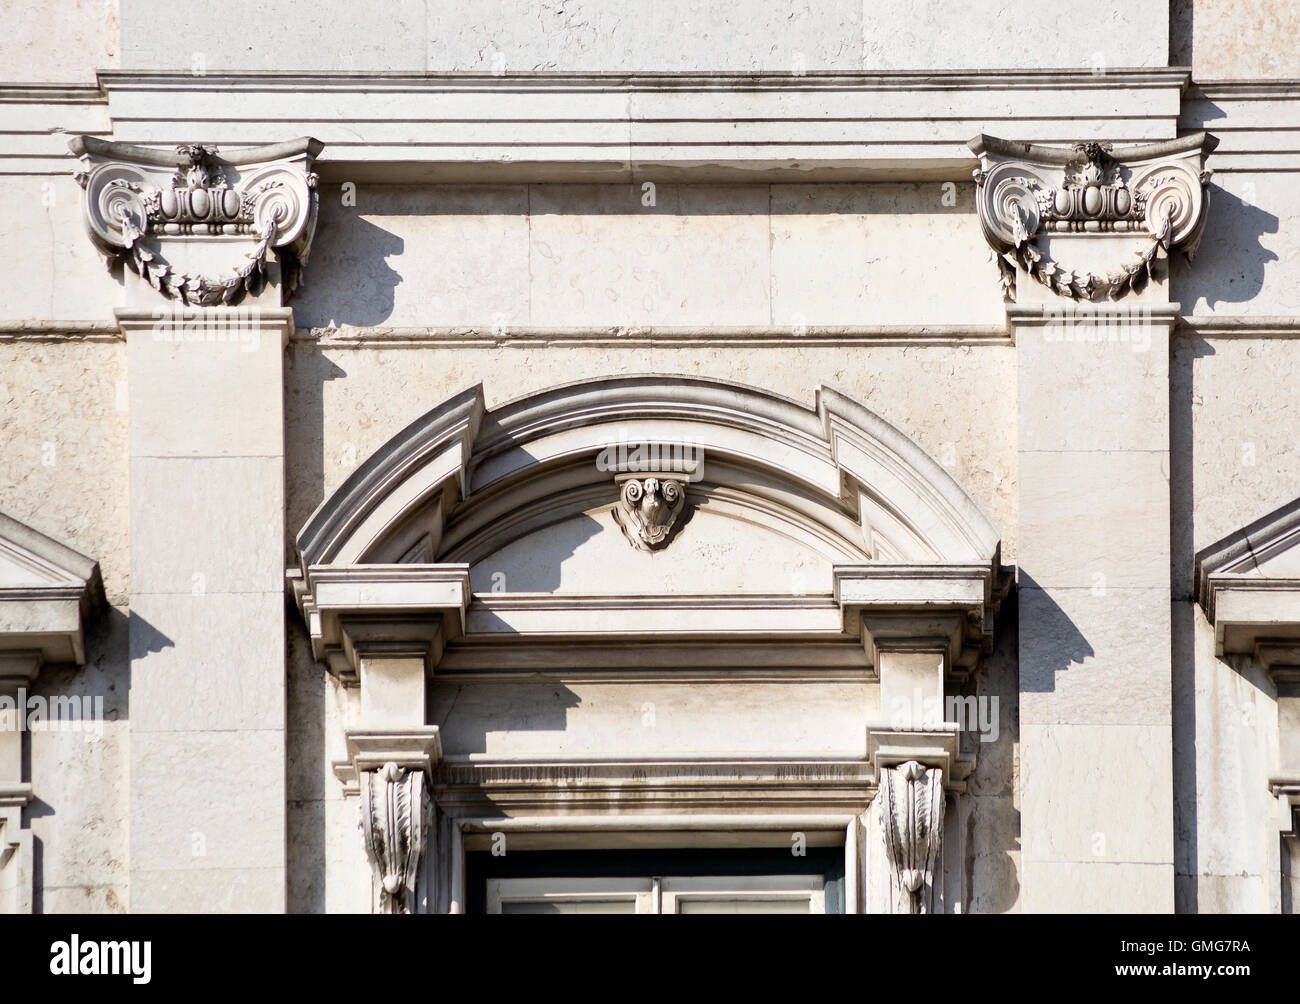 Detail of the neoclassic architecture used on Ribeiro Palace in Lisbon, Portugal - Stock Image